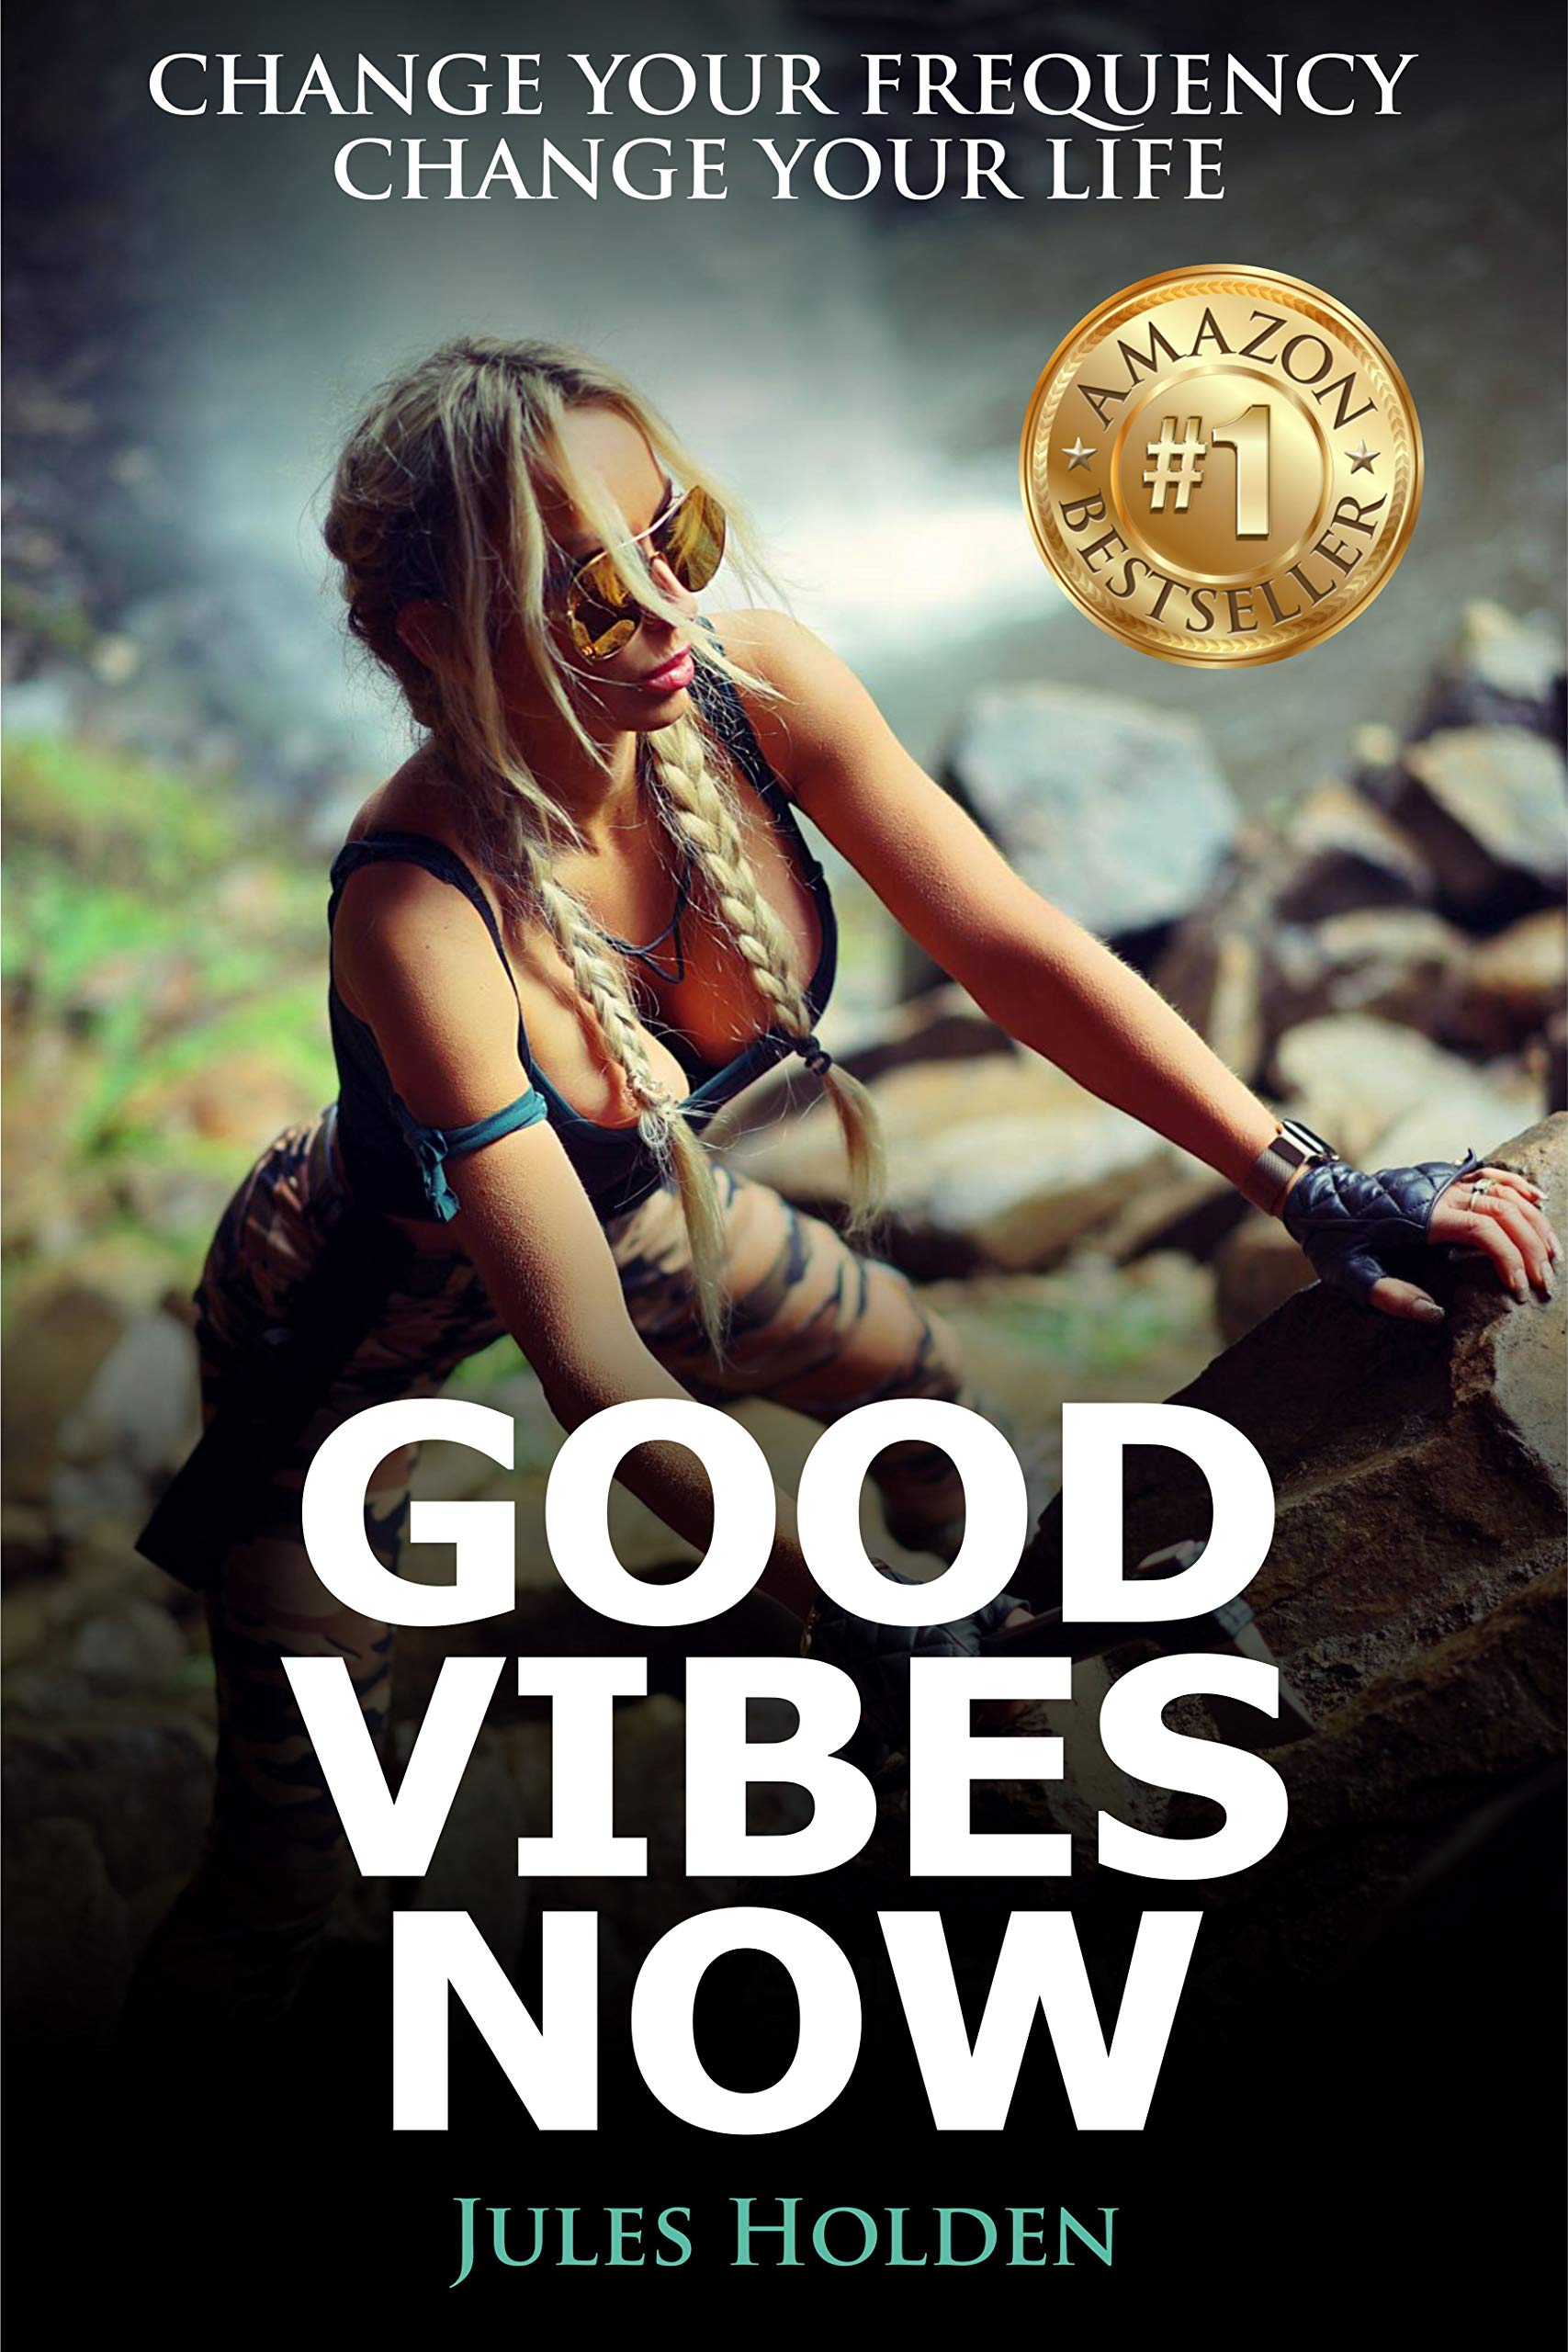 Good Vibes Now: Change Your Frequency Change Your Life